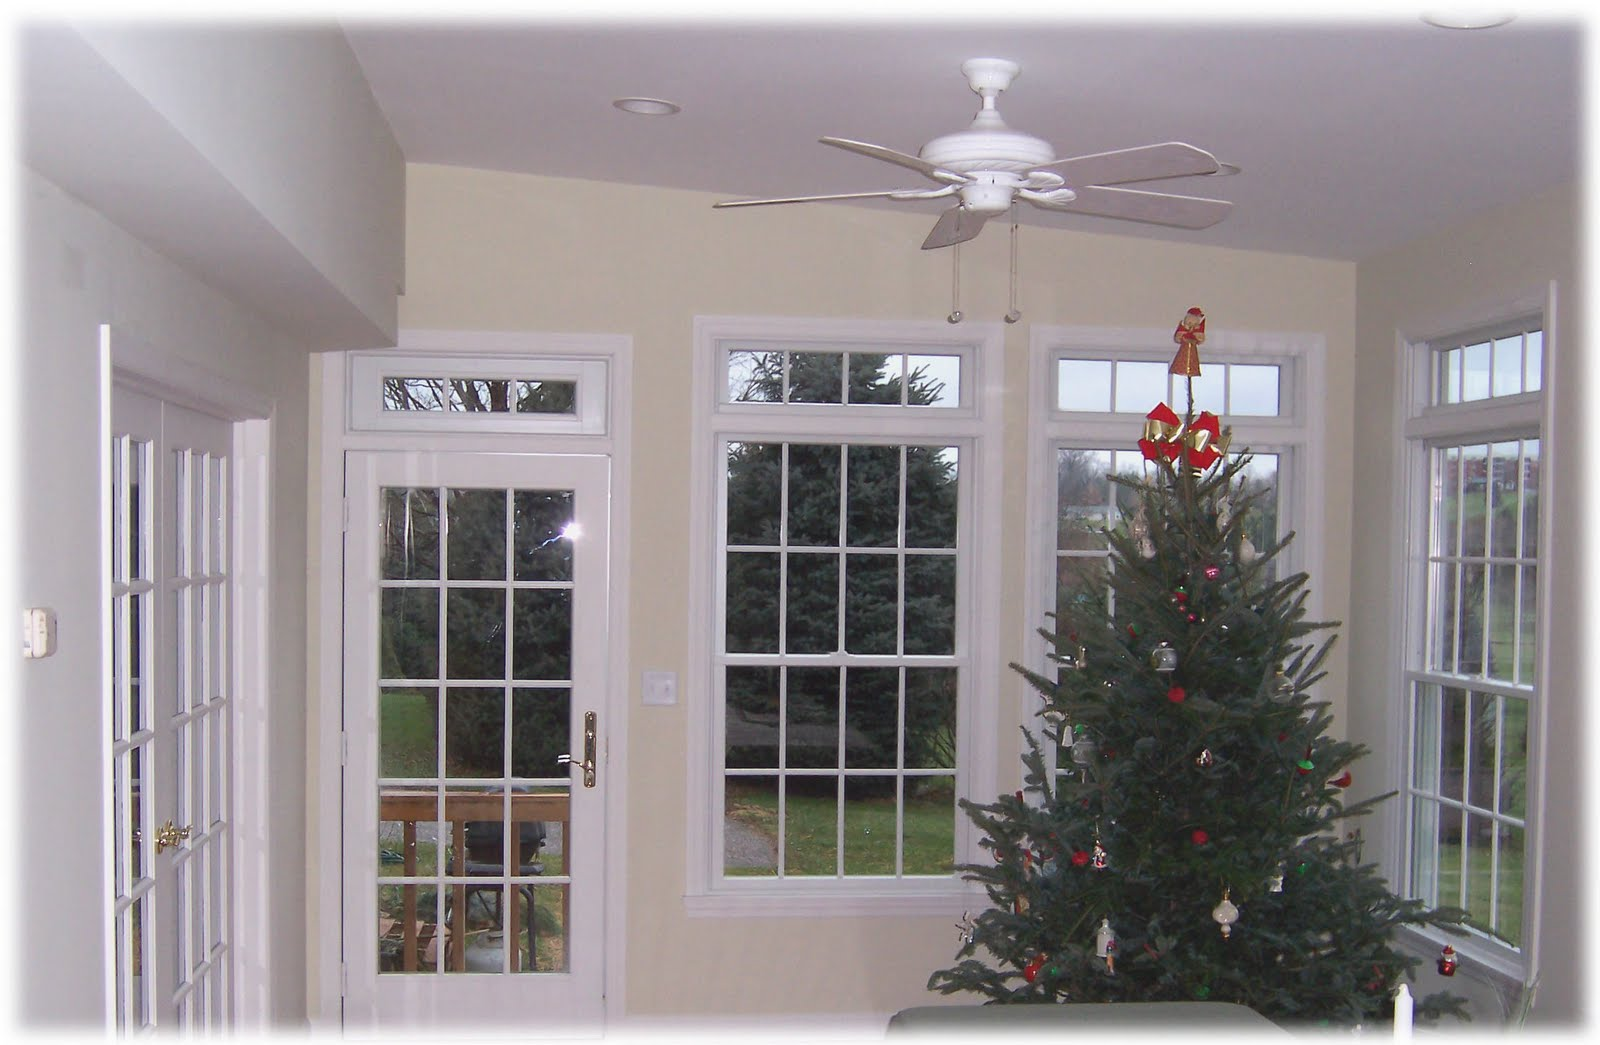 All about window window designs modern or old fashioned for Latest window designs for house